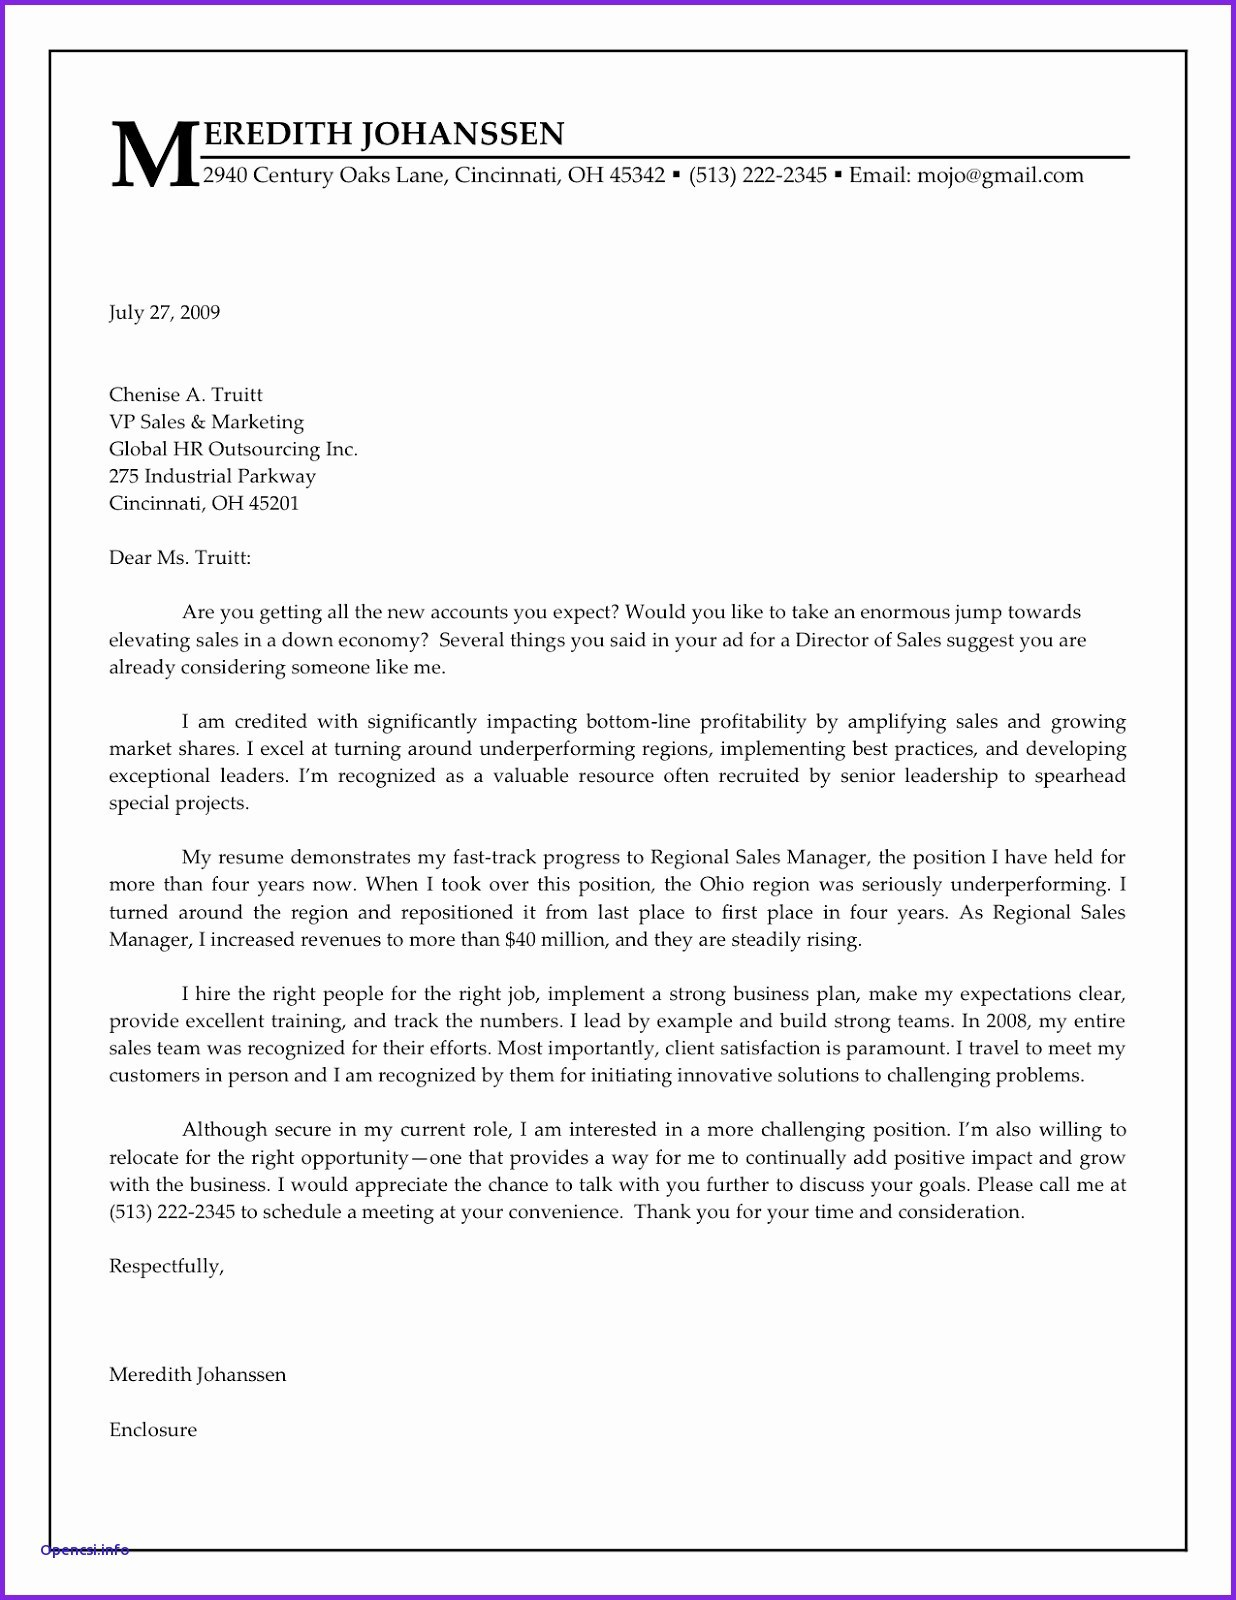 google letter template example-Resume Templats Fresh formatted Resume 0d New Free Business Letter Templates from Templates Google Docs source 1-g